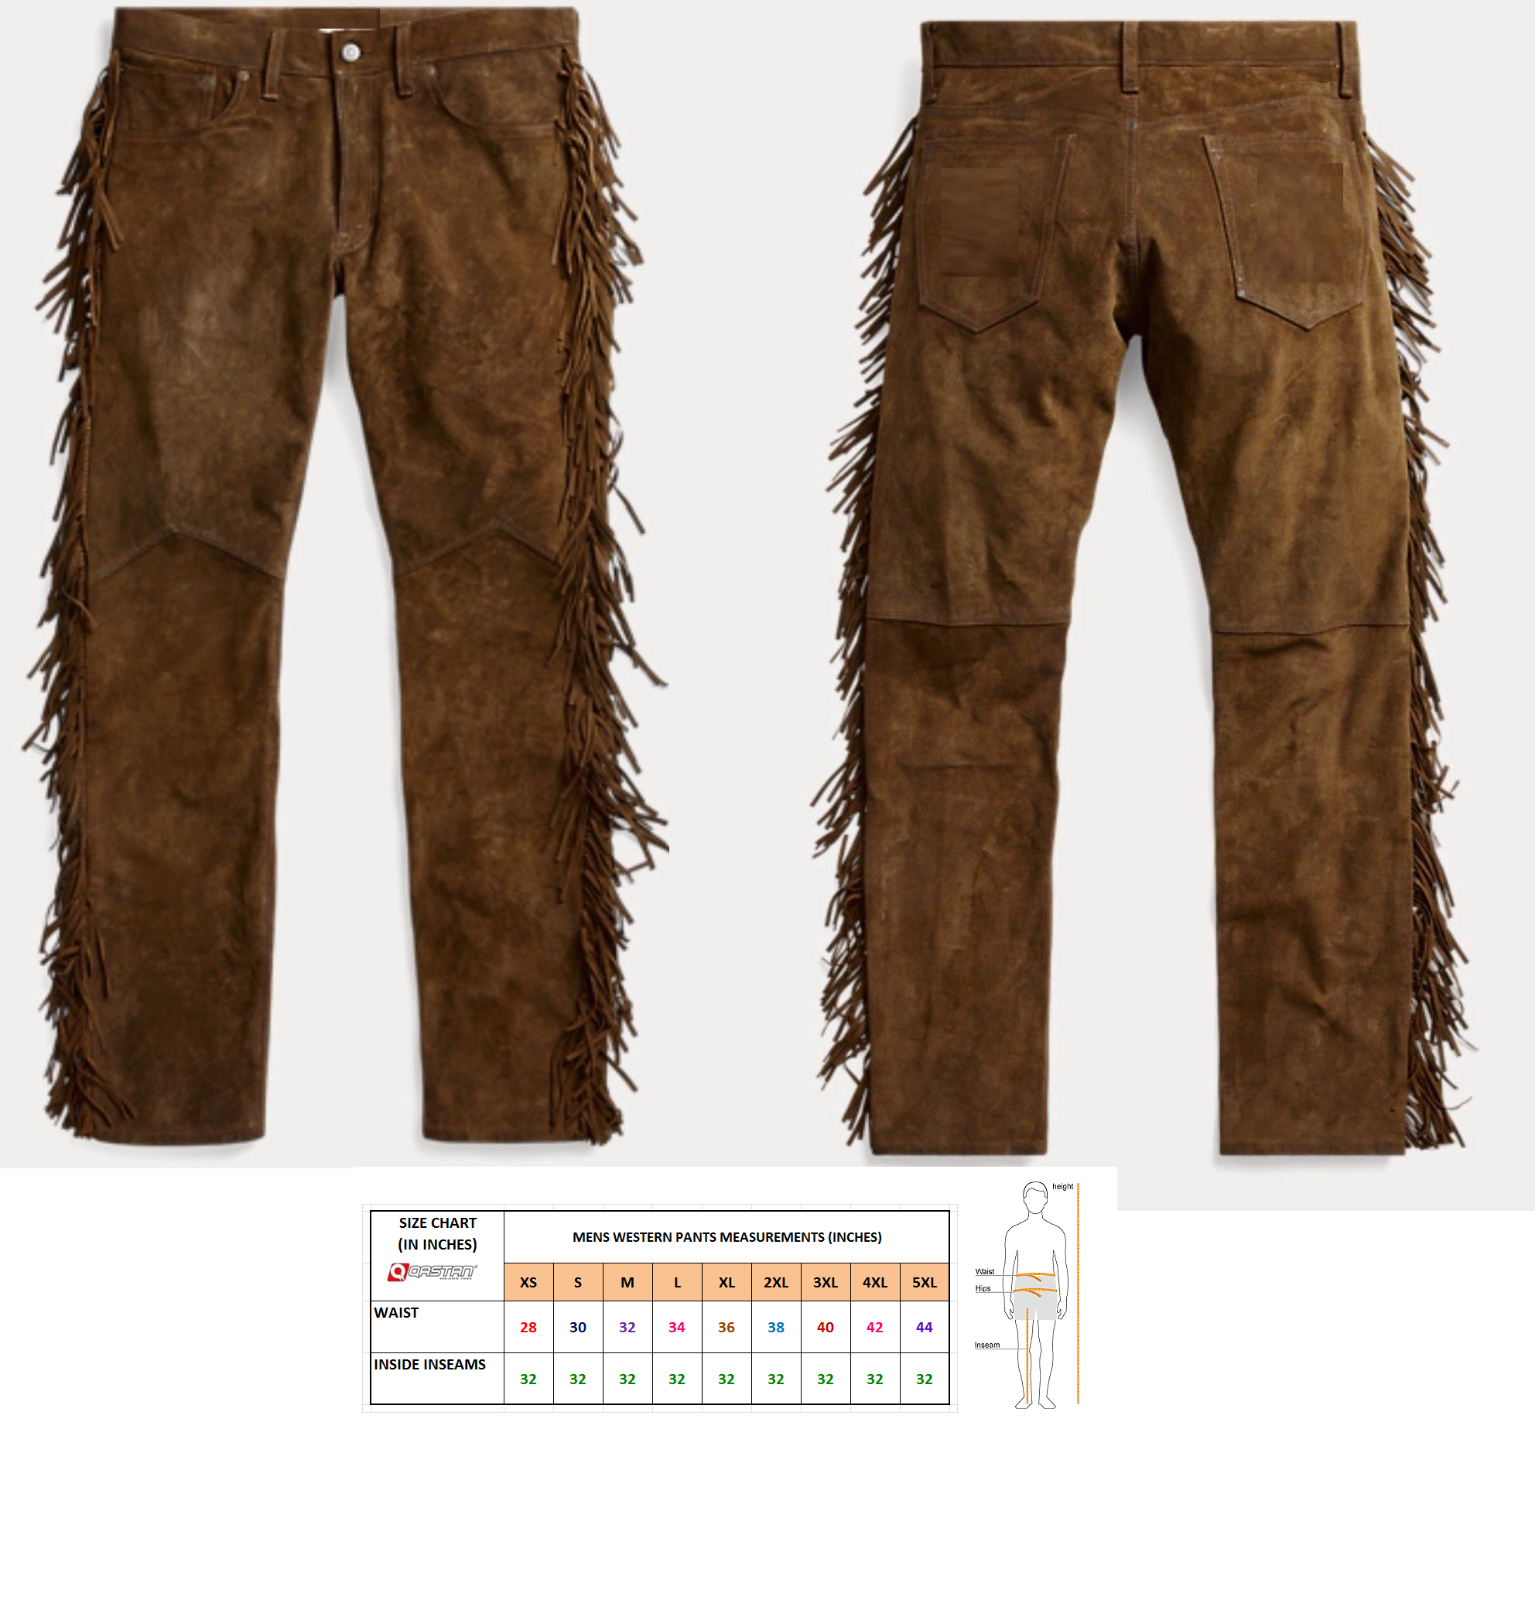 QASTAN Men's New Native American Buckskin Color Suede Leather Fringes Pants WP2